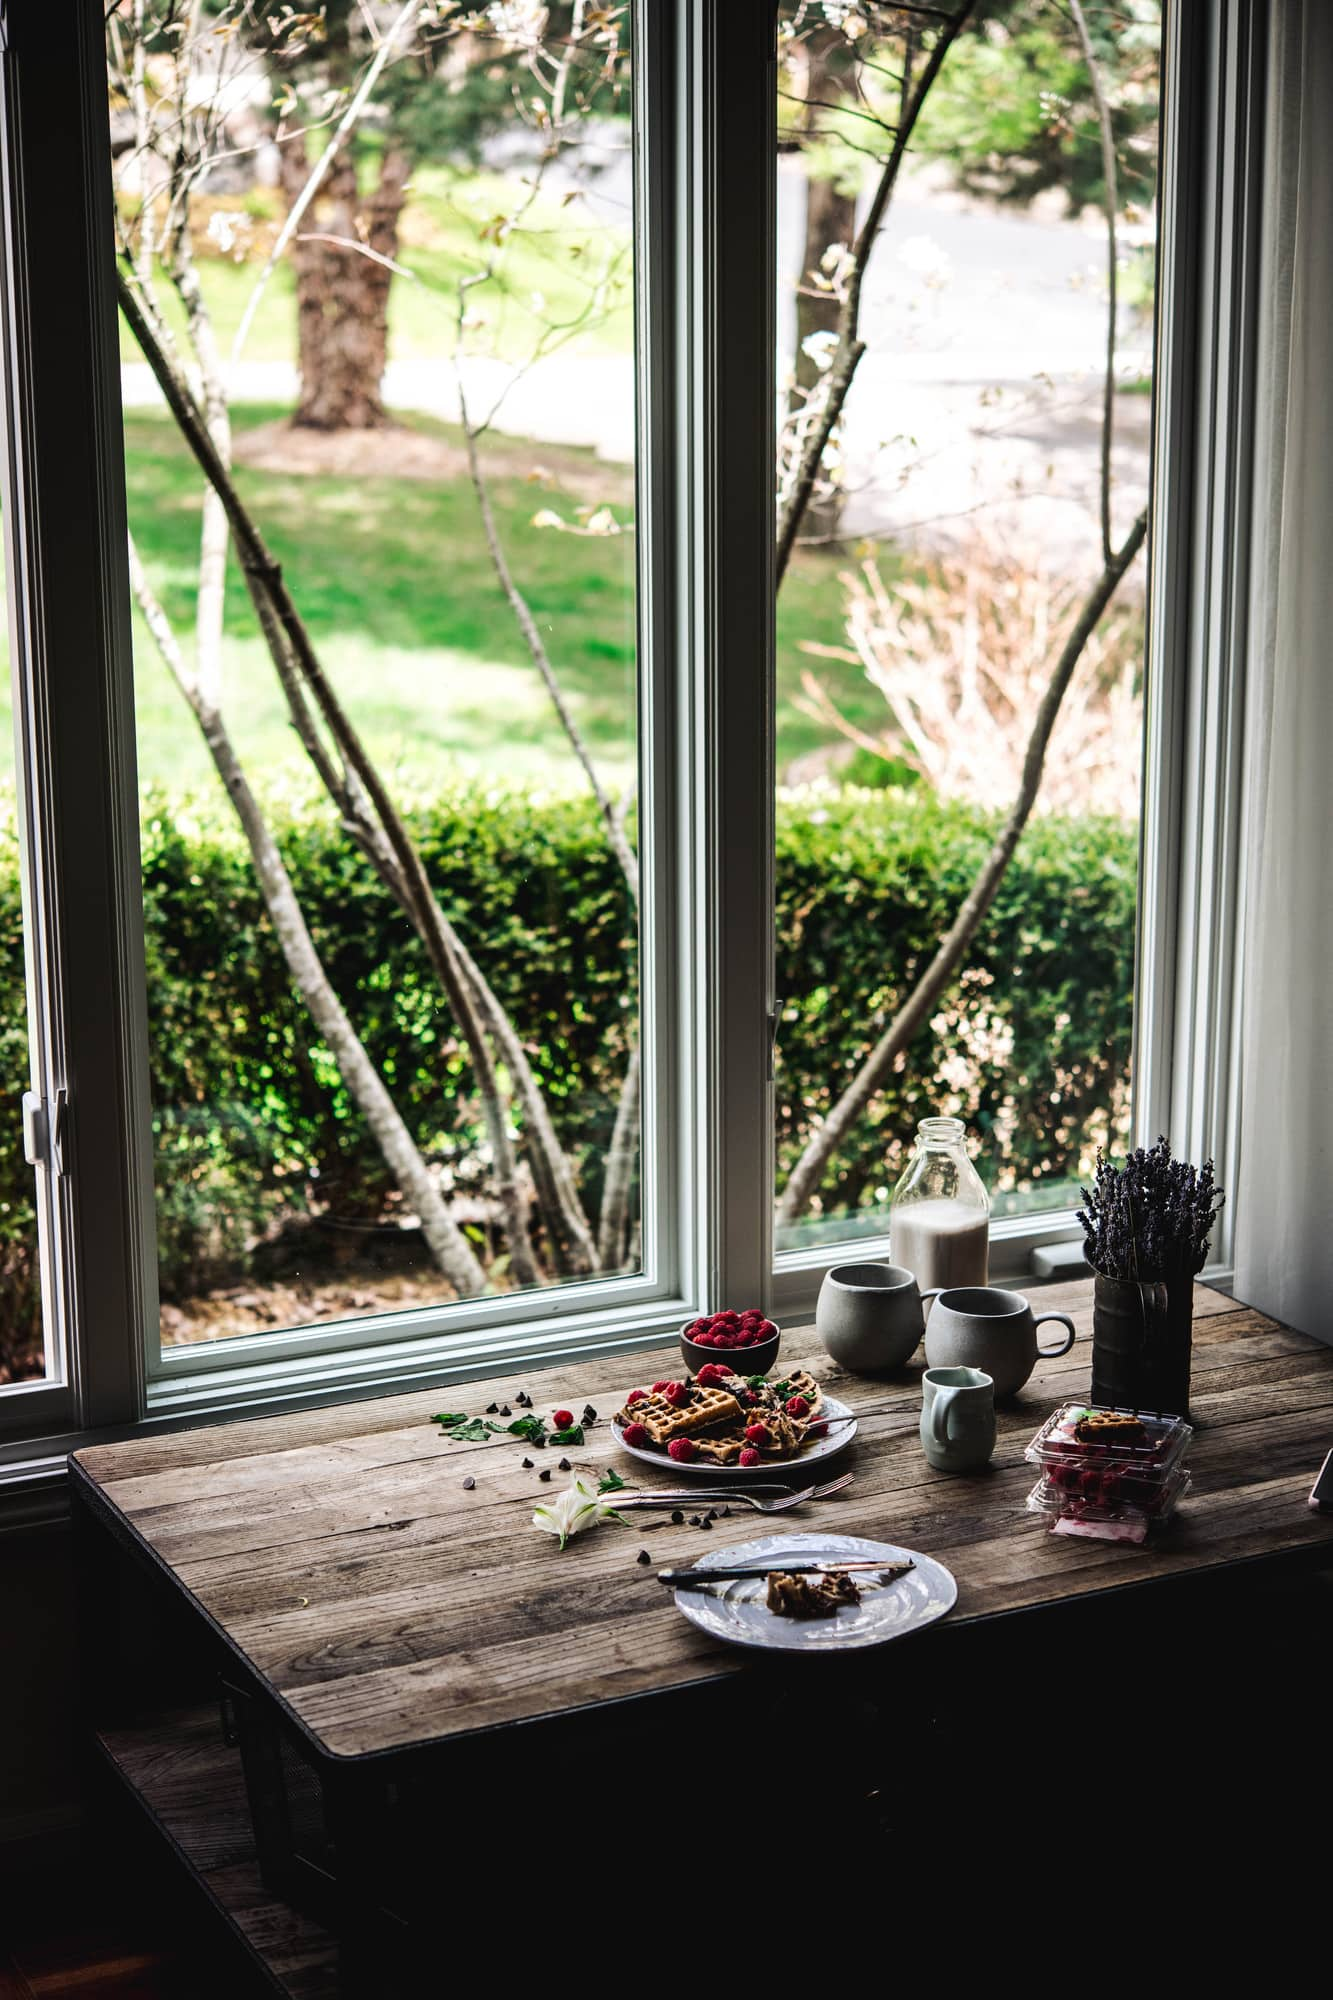 Side view of food photography setup with a wood table next to a large window